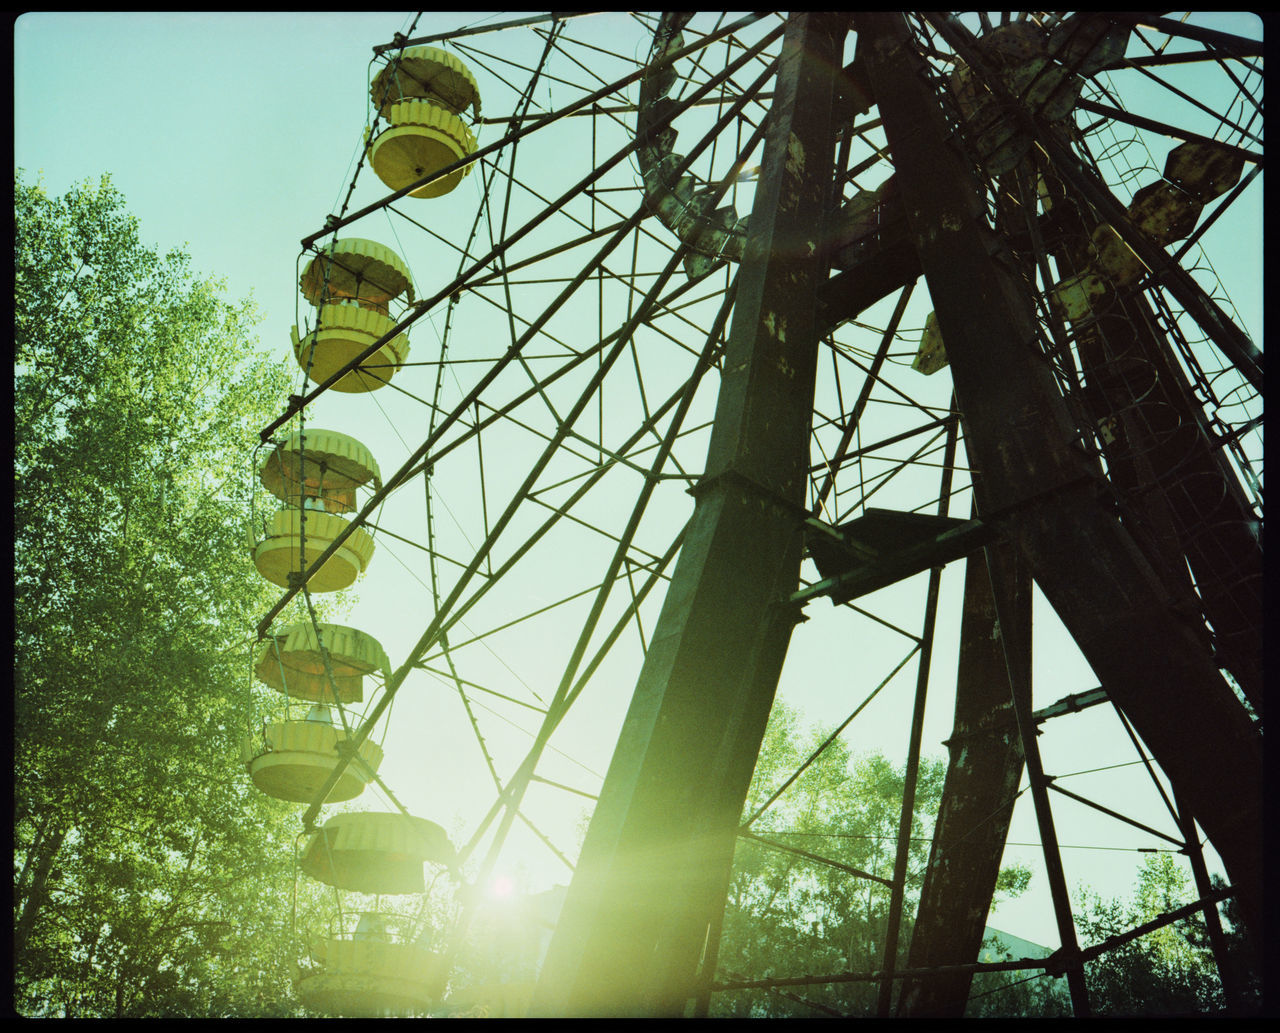 The Grotesque of Pripyat Abandoned Amusement Park Abandoned Hospital Analogue Photography Anbandoned Fun Park Broken Ferris Wheel Despair Evacuation Ferris Wheel Ferris Wheel And Trees Ferris Wheel Summer Flare Ferris Wheel Giant Wheel Gondula Nuclear Disaster Outdoors Plaubel Makina 67 Pripyat Pripyat Amusement Park Pripyat Chernobyl Pripyat Ferris Wheel Pripyat Hospital Recreation  Soviet Union Sunshine Ferris Wheel Ukraine The Photojournalist - 2017 EyeEm Awards